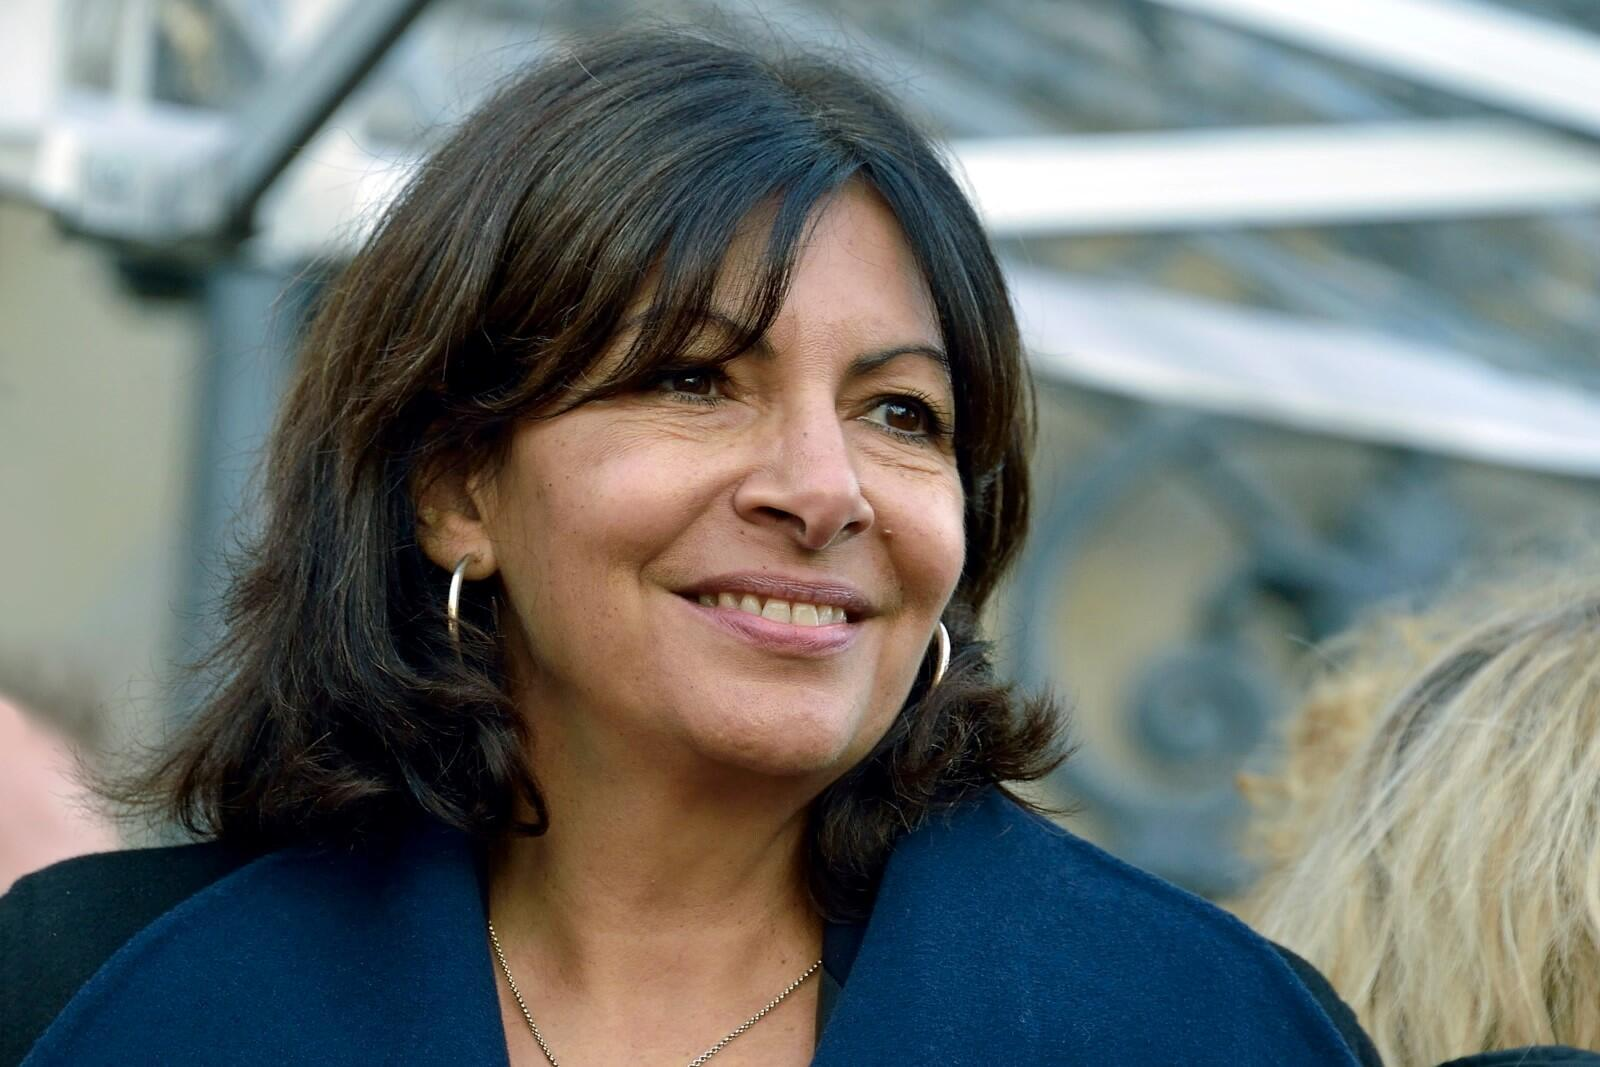 Anne Hidalgo won a second term as mayor of Paris following the second round of municipal elections.